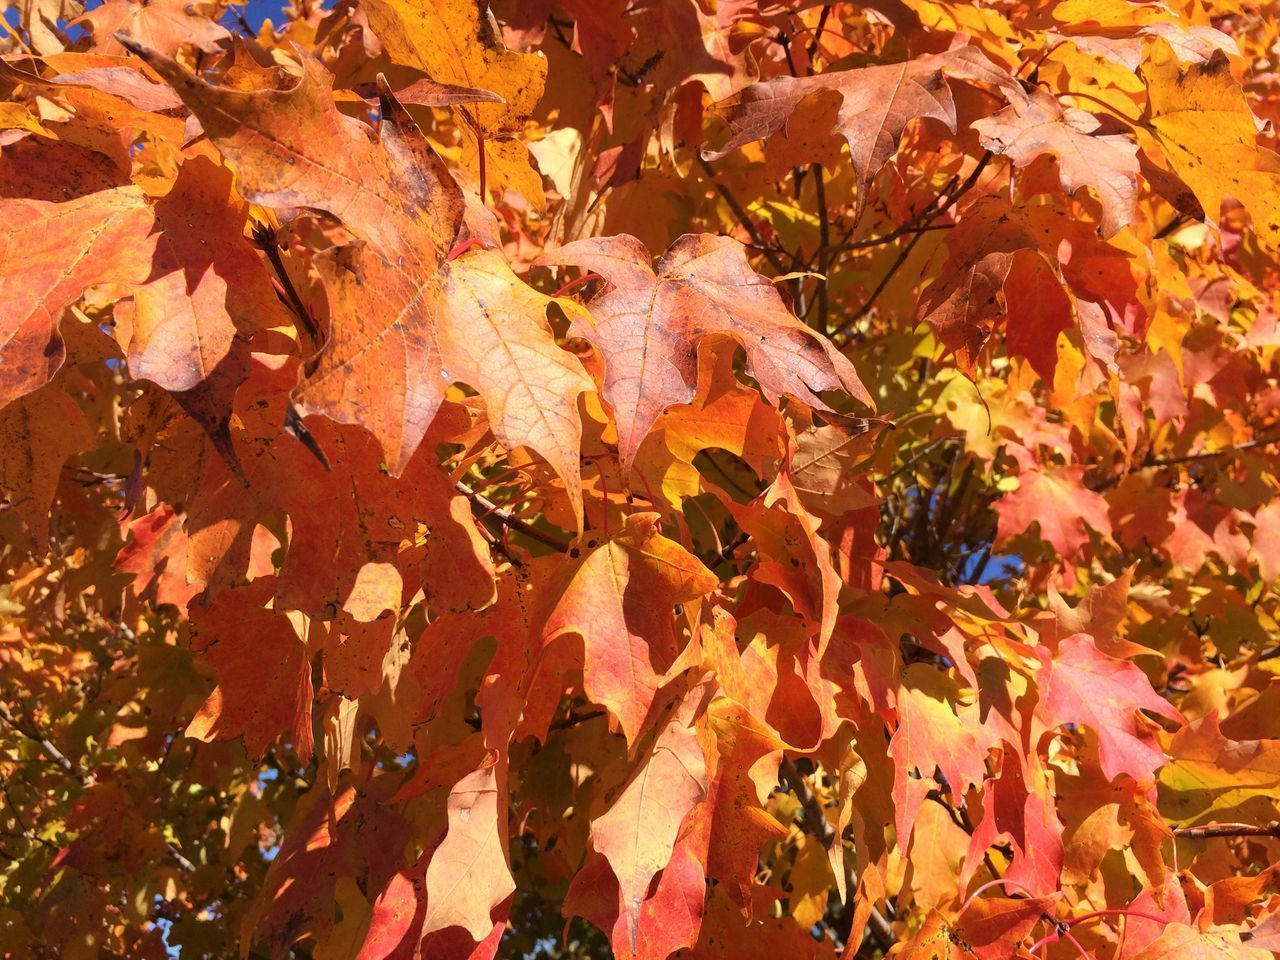 autumn, change, plant part, leaf, leaves, day, nature, orange color, maple leaf, close-up, beauty in nature, plant, no people, full frame, falling, dry, outdoors, natural condition, growth, fragility, maple tree, fall, autumn collection